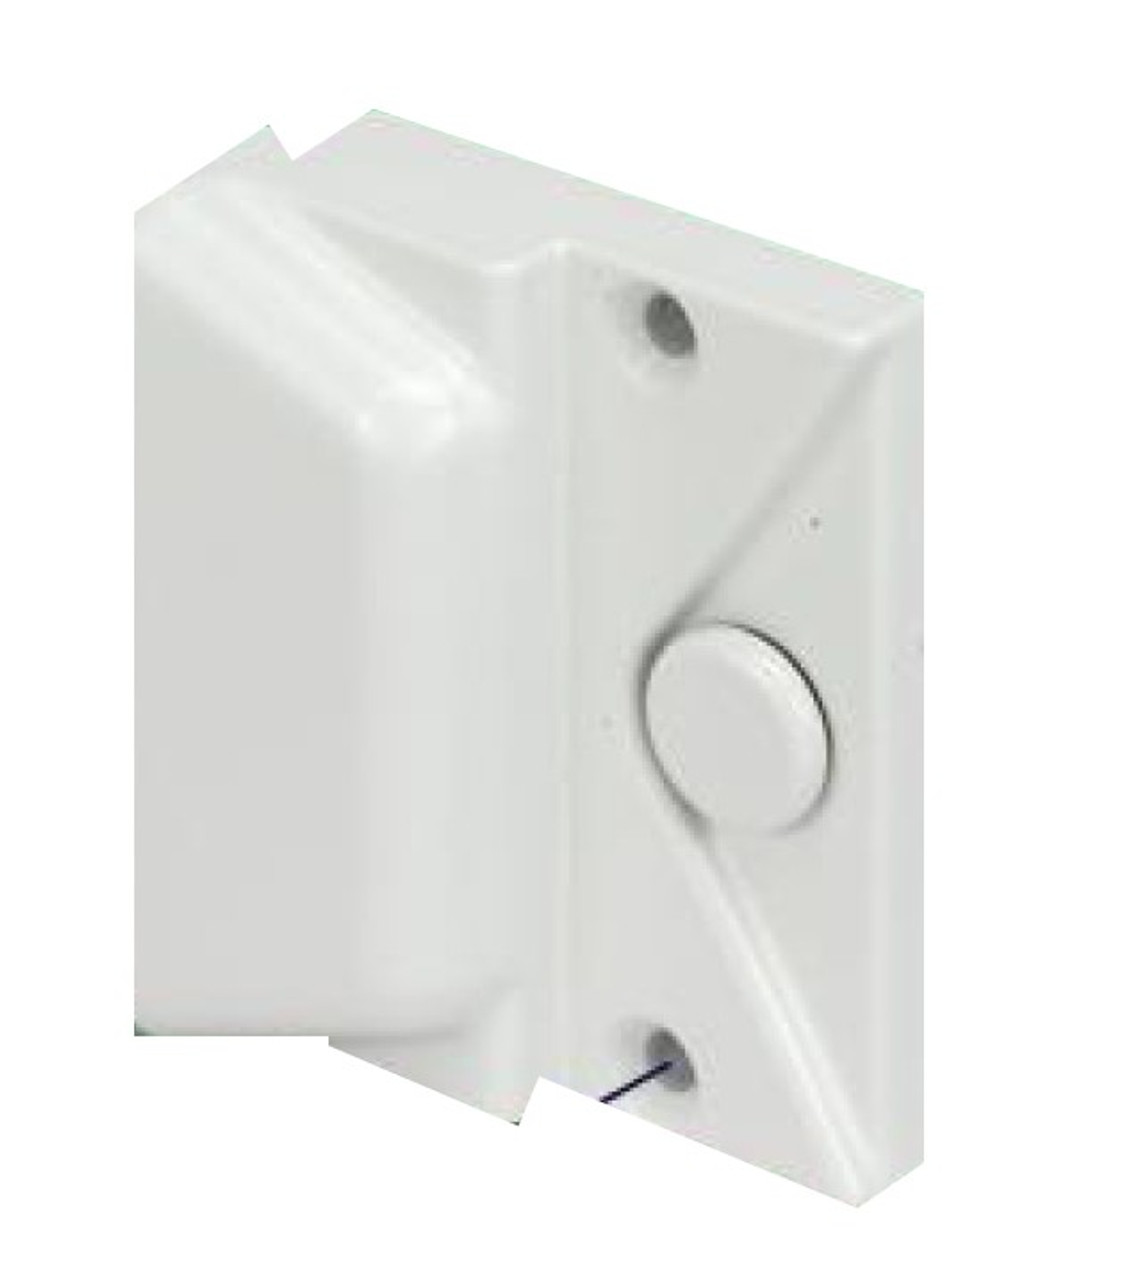 Sash lock secondary for casement with sash lock keeper 1985 to 2005